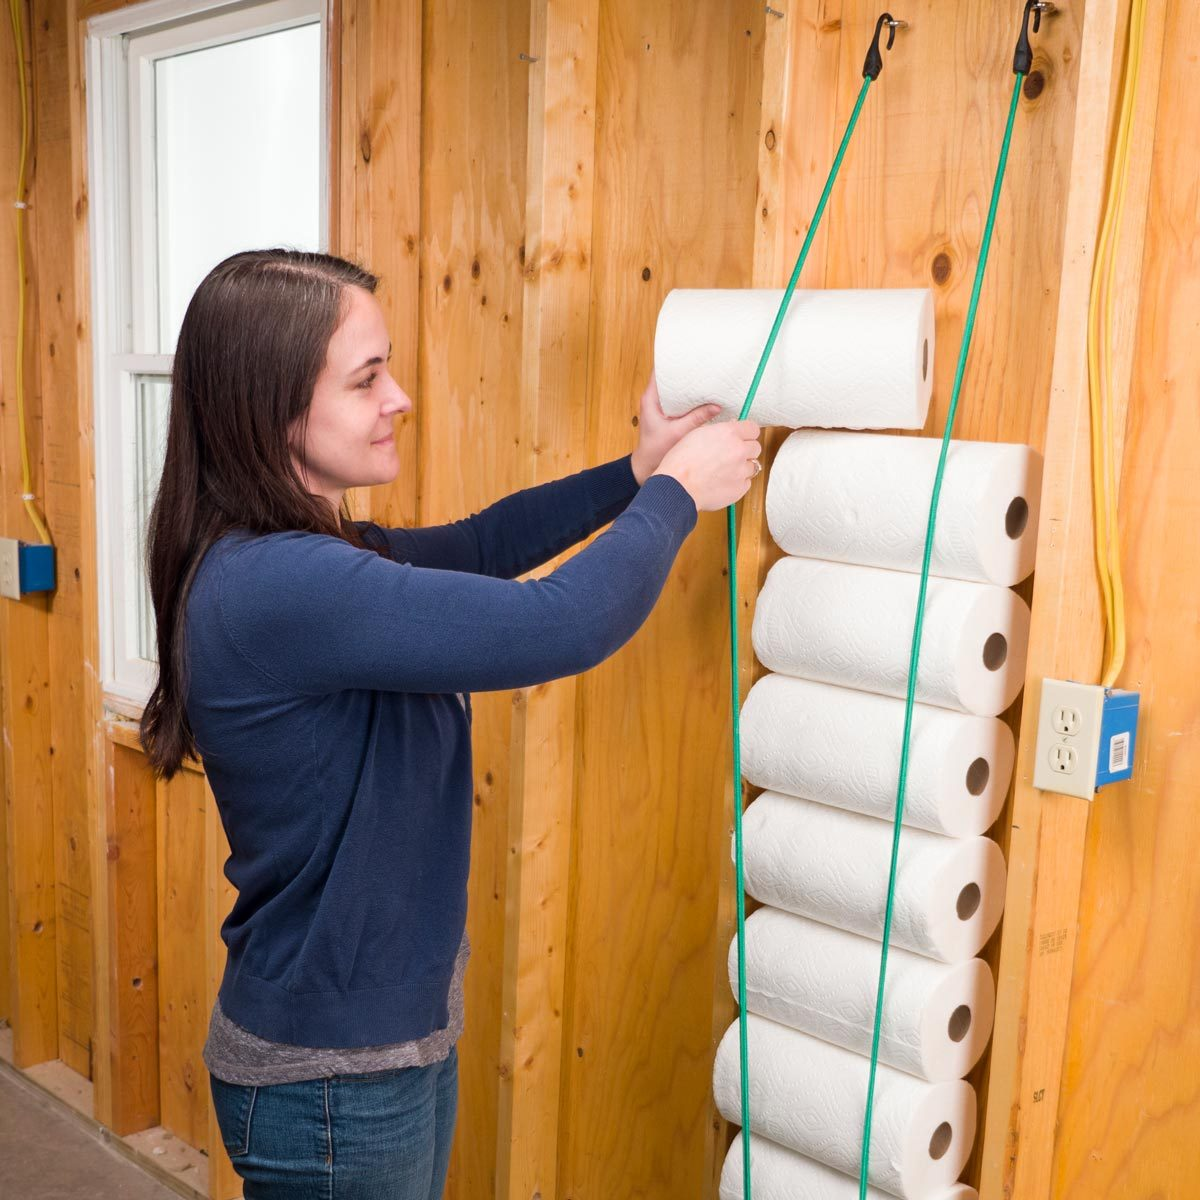 bungee cord paper towel storage handy hint